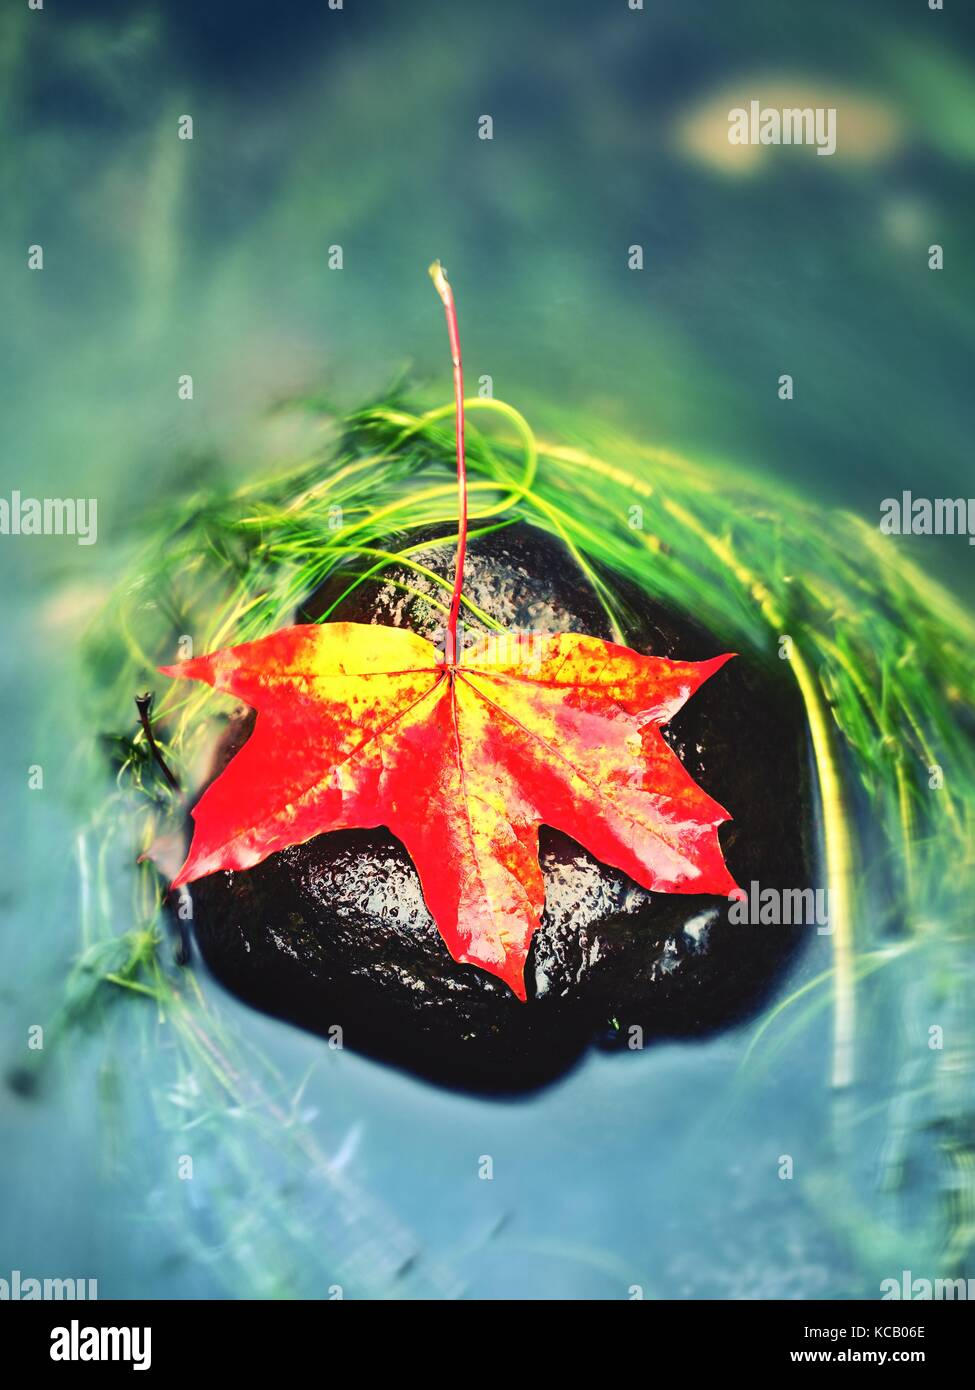 Caught yellow orange maple leaf on  long green algae stone. Colorful symbol of comming fall season. Boulder in mirror - Stock Image